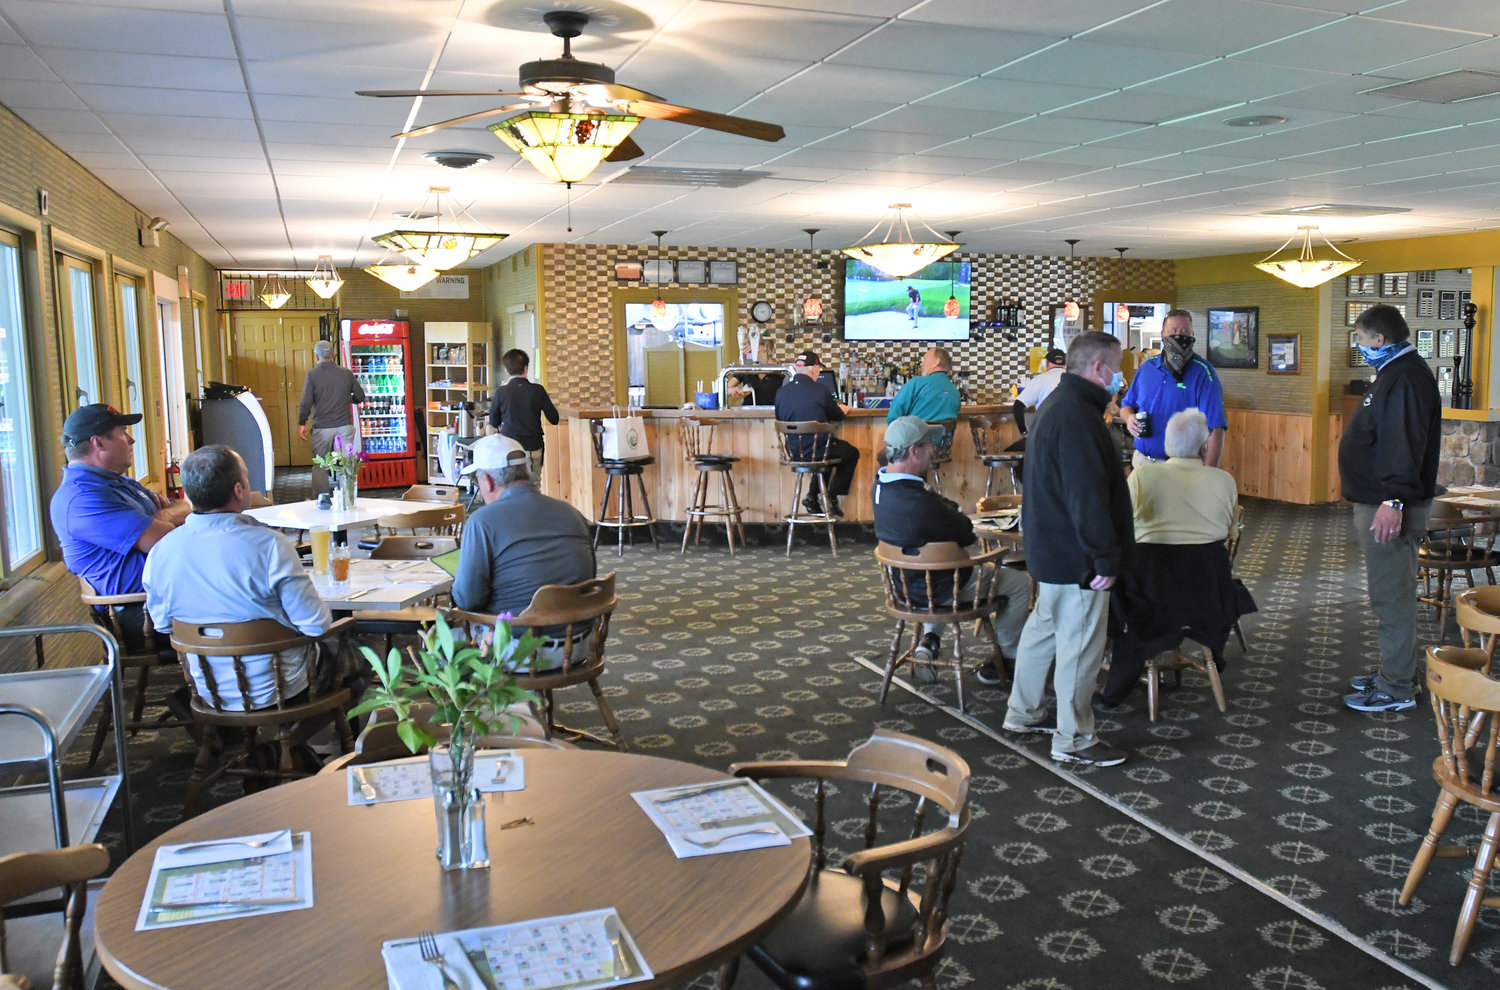 LIVELY CLUBHOUSE — Golfers relaxing after their round inside the Thendara clubhouse.